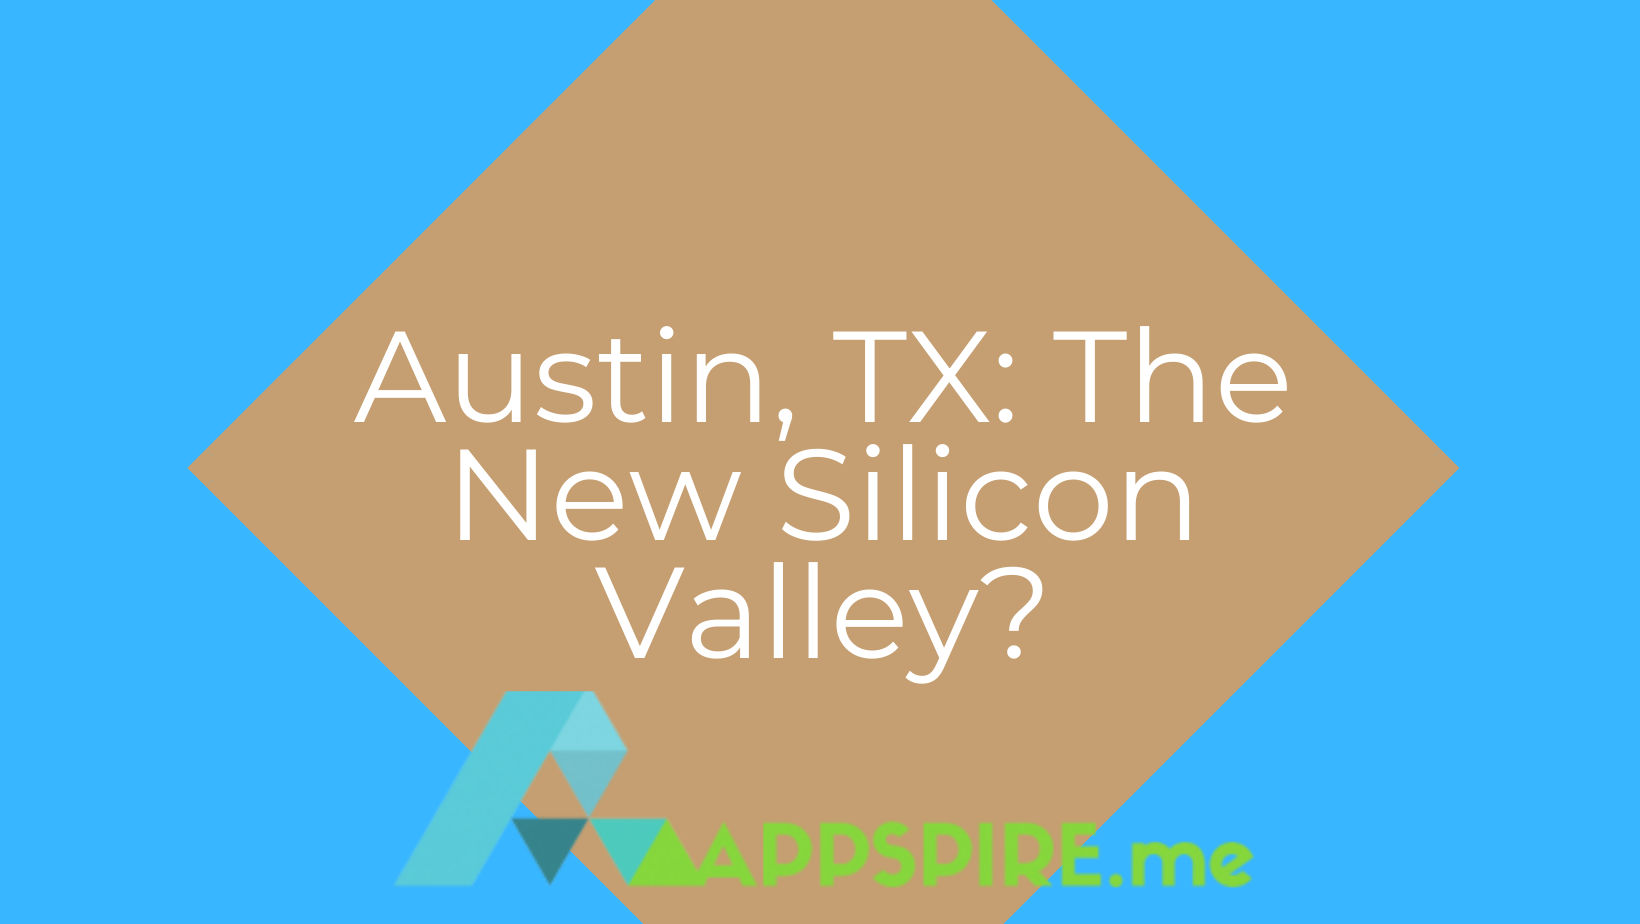 Austin, TX Is Going to Be The New Silicon Valley